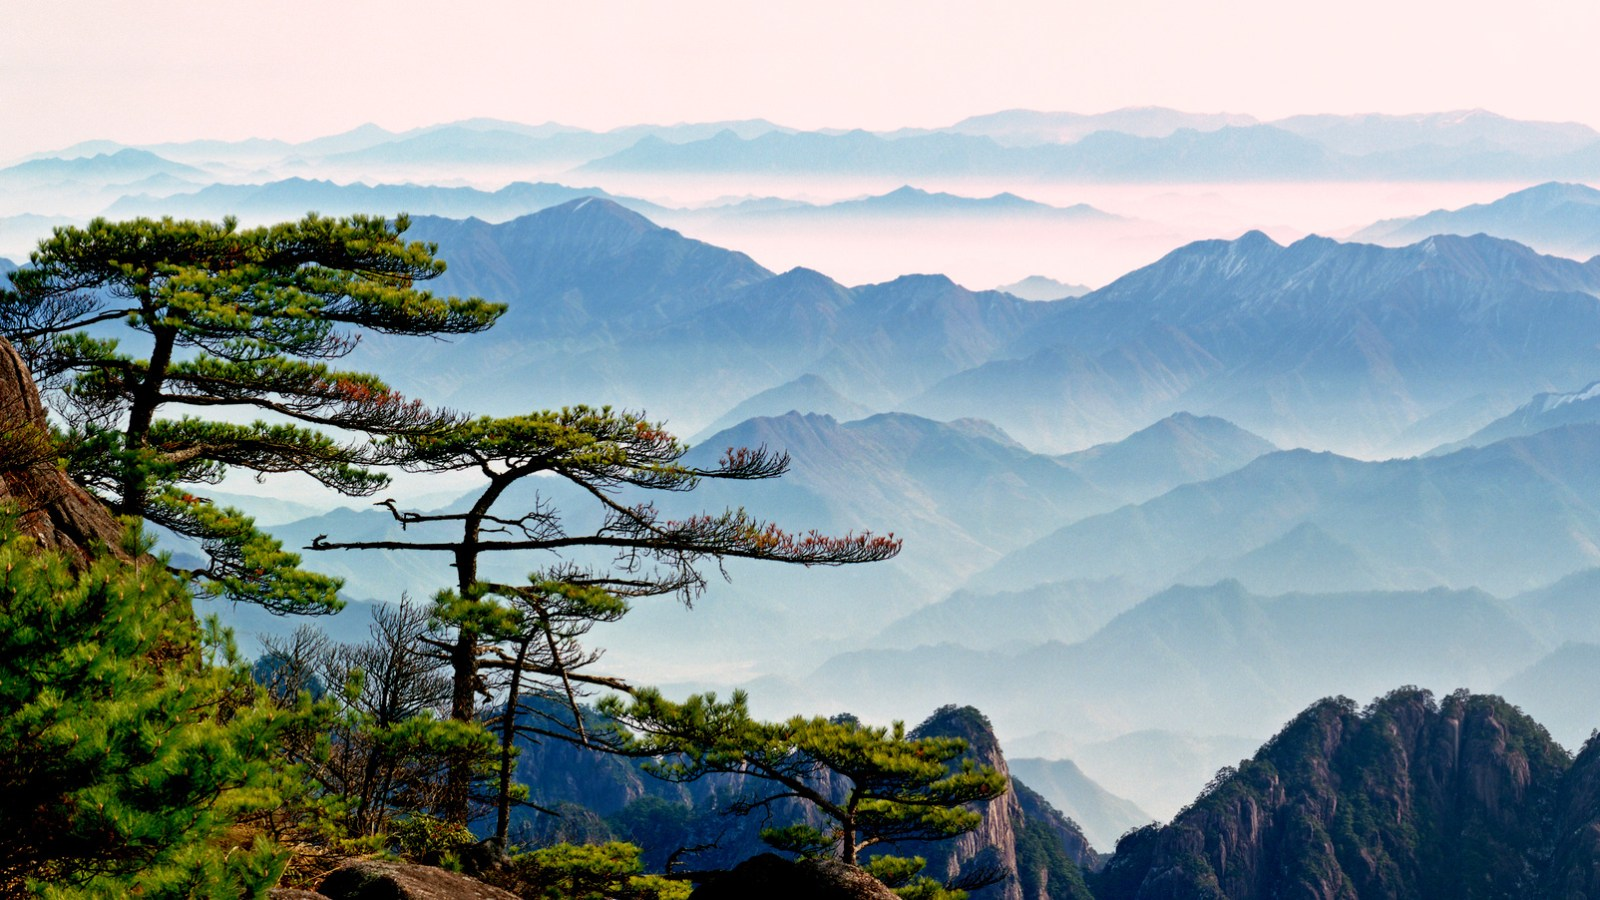 Misty mountain in China